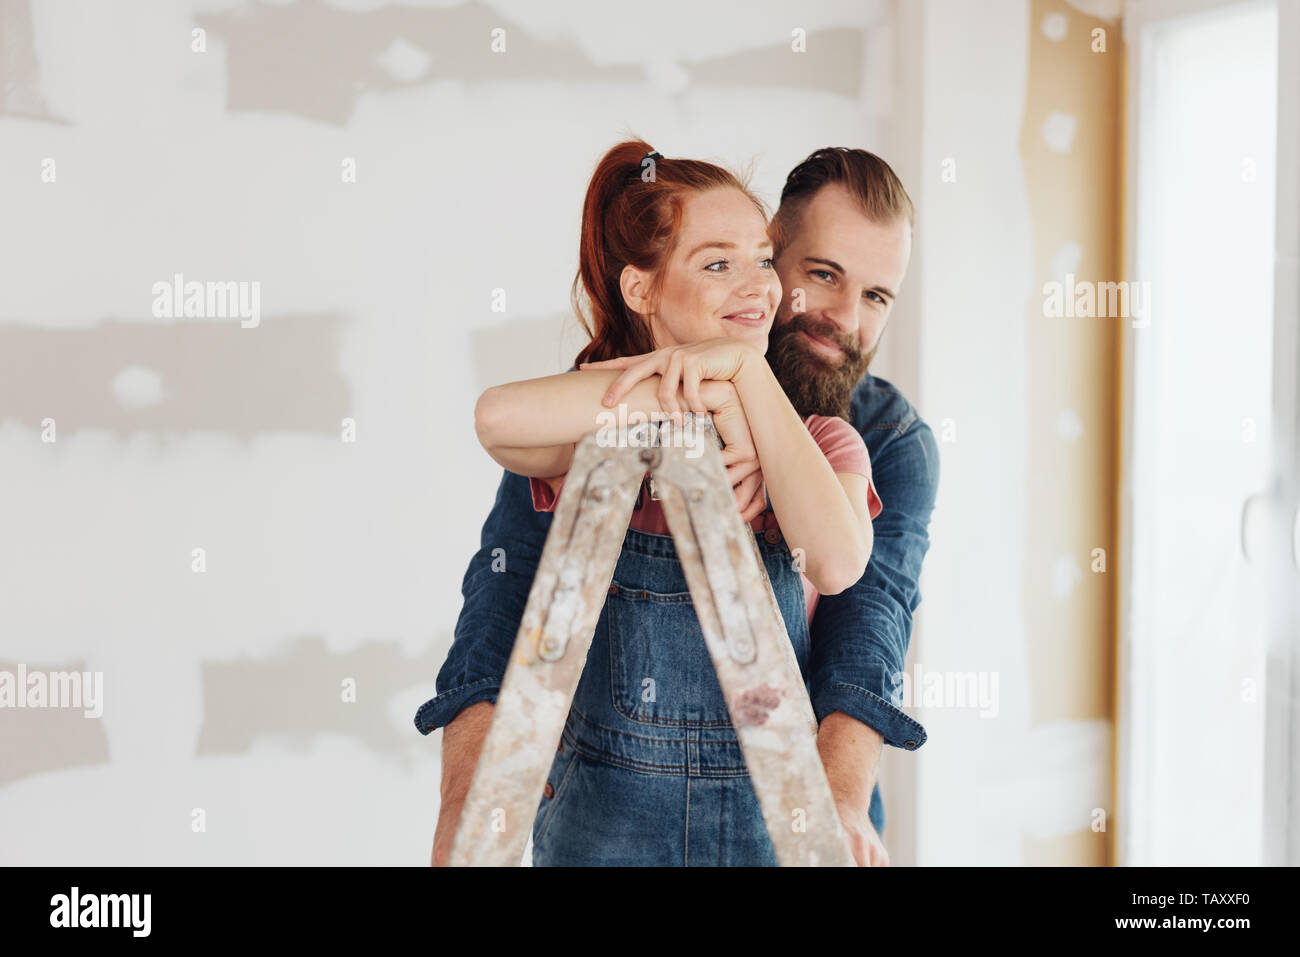 Loving young couple doing DIY home improvements renovating their house standing in an affectionate embrace with the woman leaning on a ladder on site Stock Photo